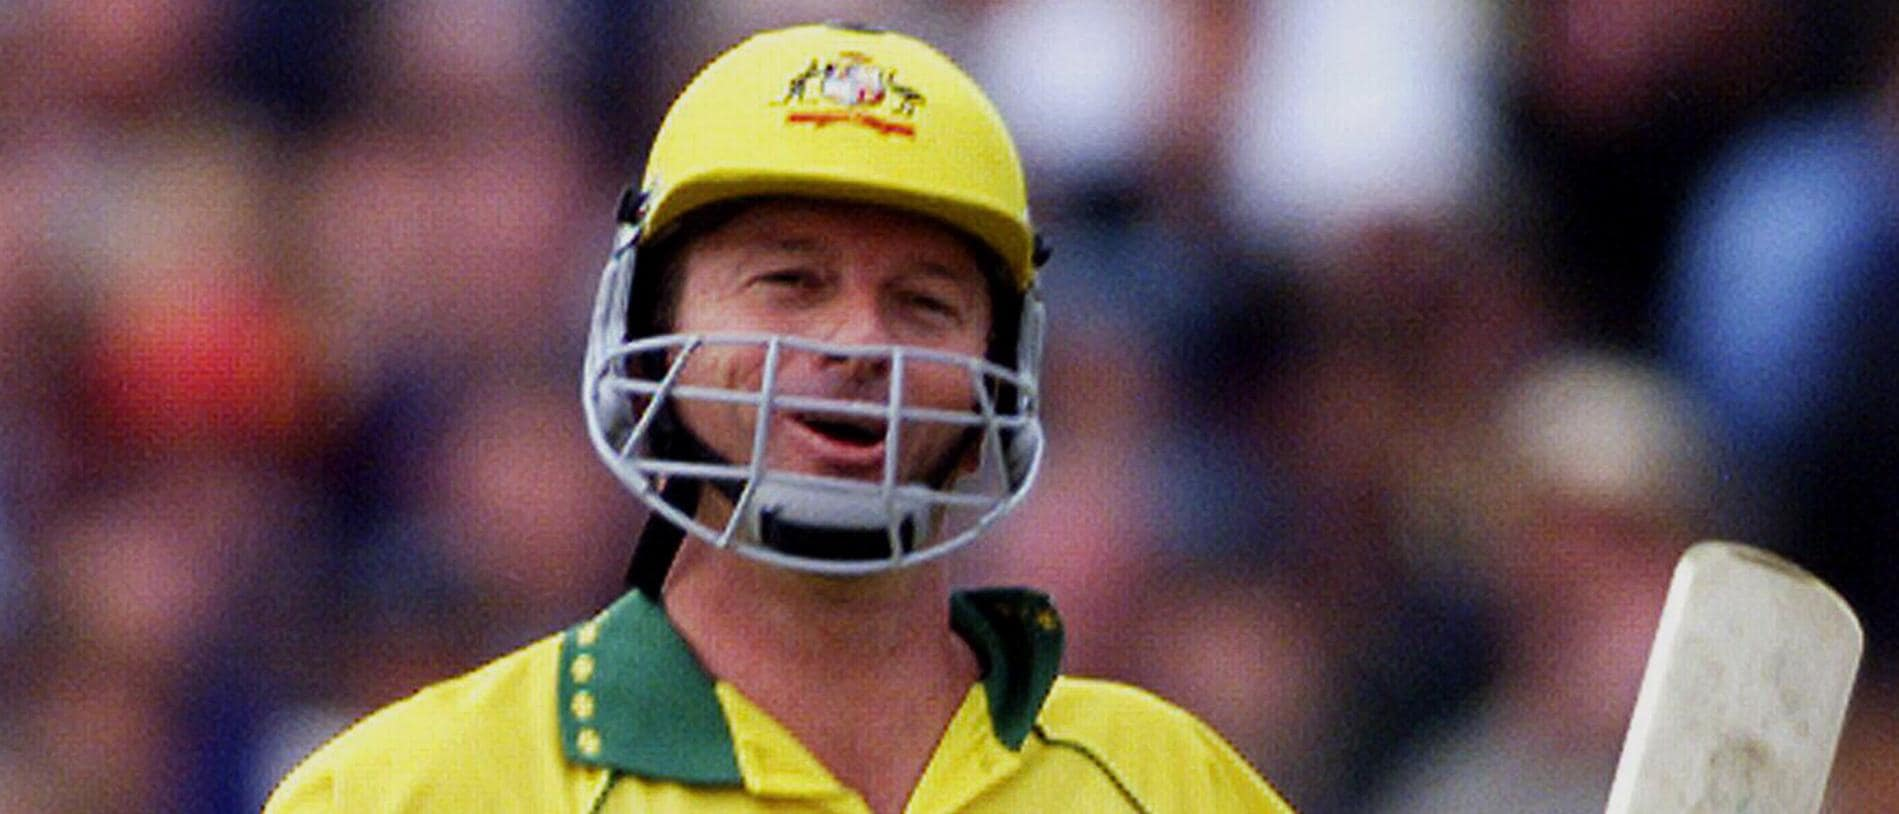 JUNE 14, 1999 : Batsman & captain Steve Waugh after his man of the match unbeaten century performance during Australia v South Africa in Super Six game of World Cup at Headingley, Leeds, 14/06/99. Cricket F/L